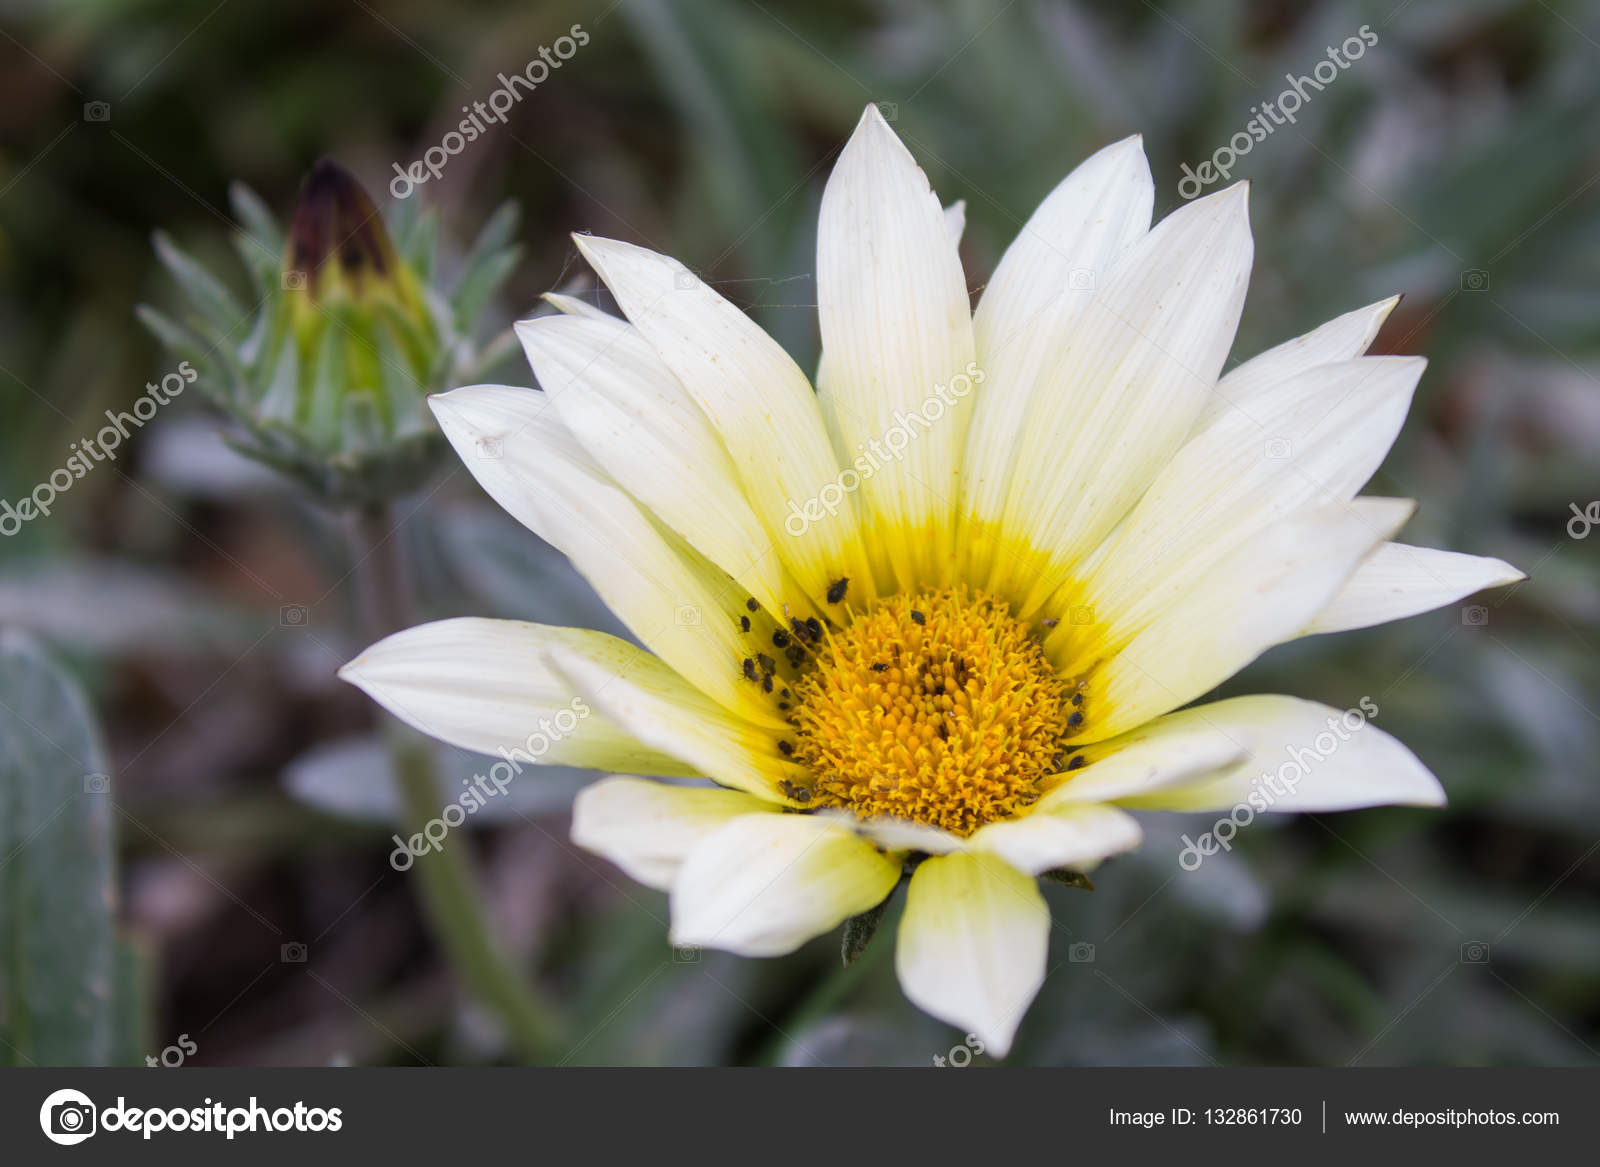 Big White Flower On A Background Of Blurred Grass Stock Photo